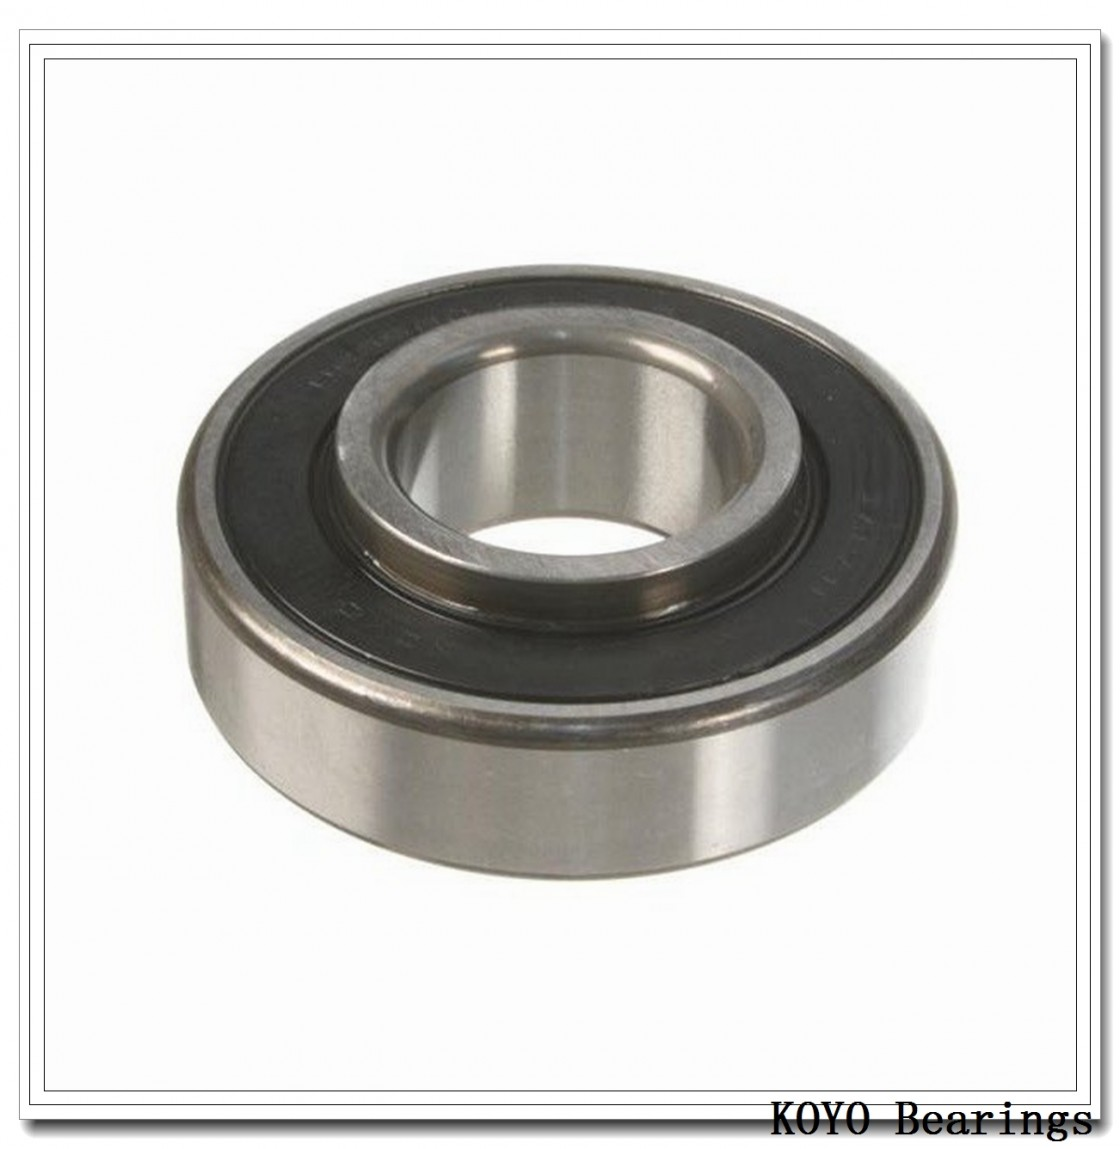 KOYO 83A551BCS45 angular contact ball bearings